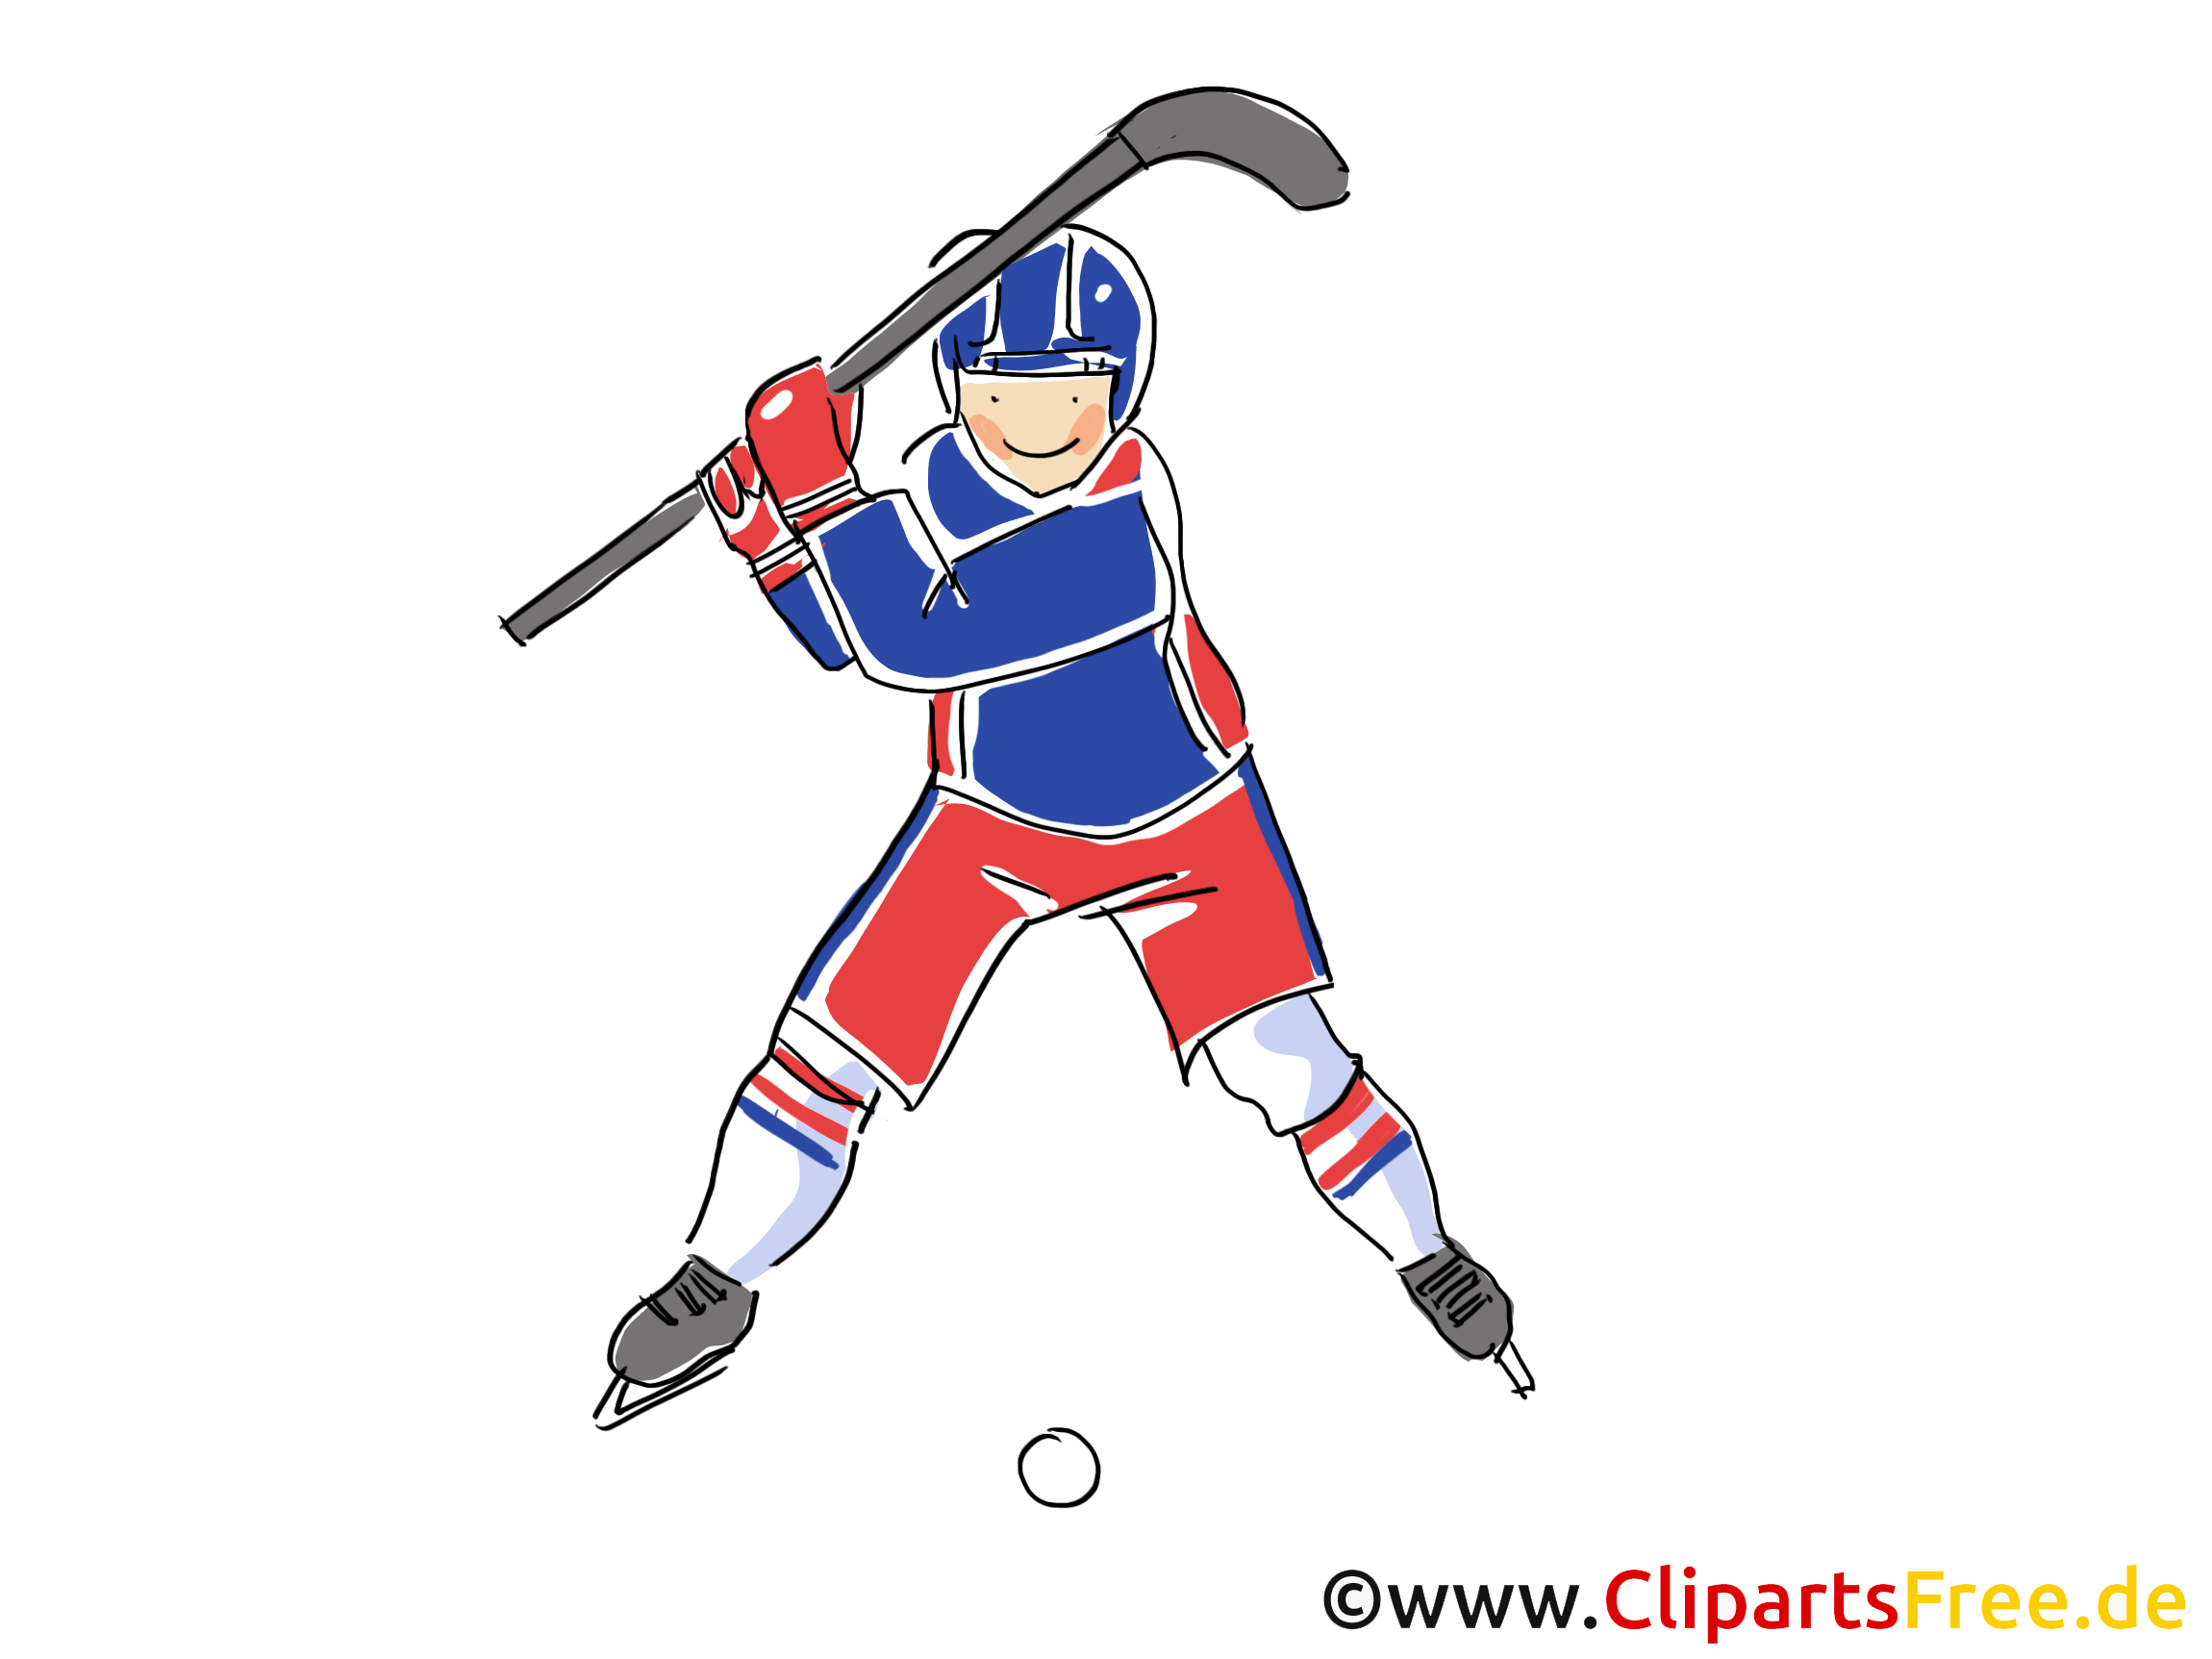 Image joueur - Hockey images cliparts